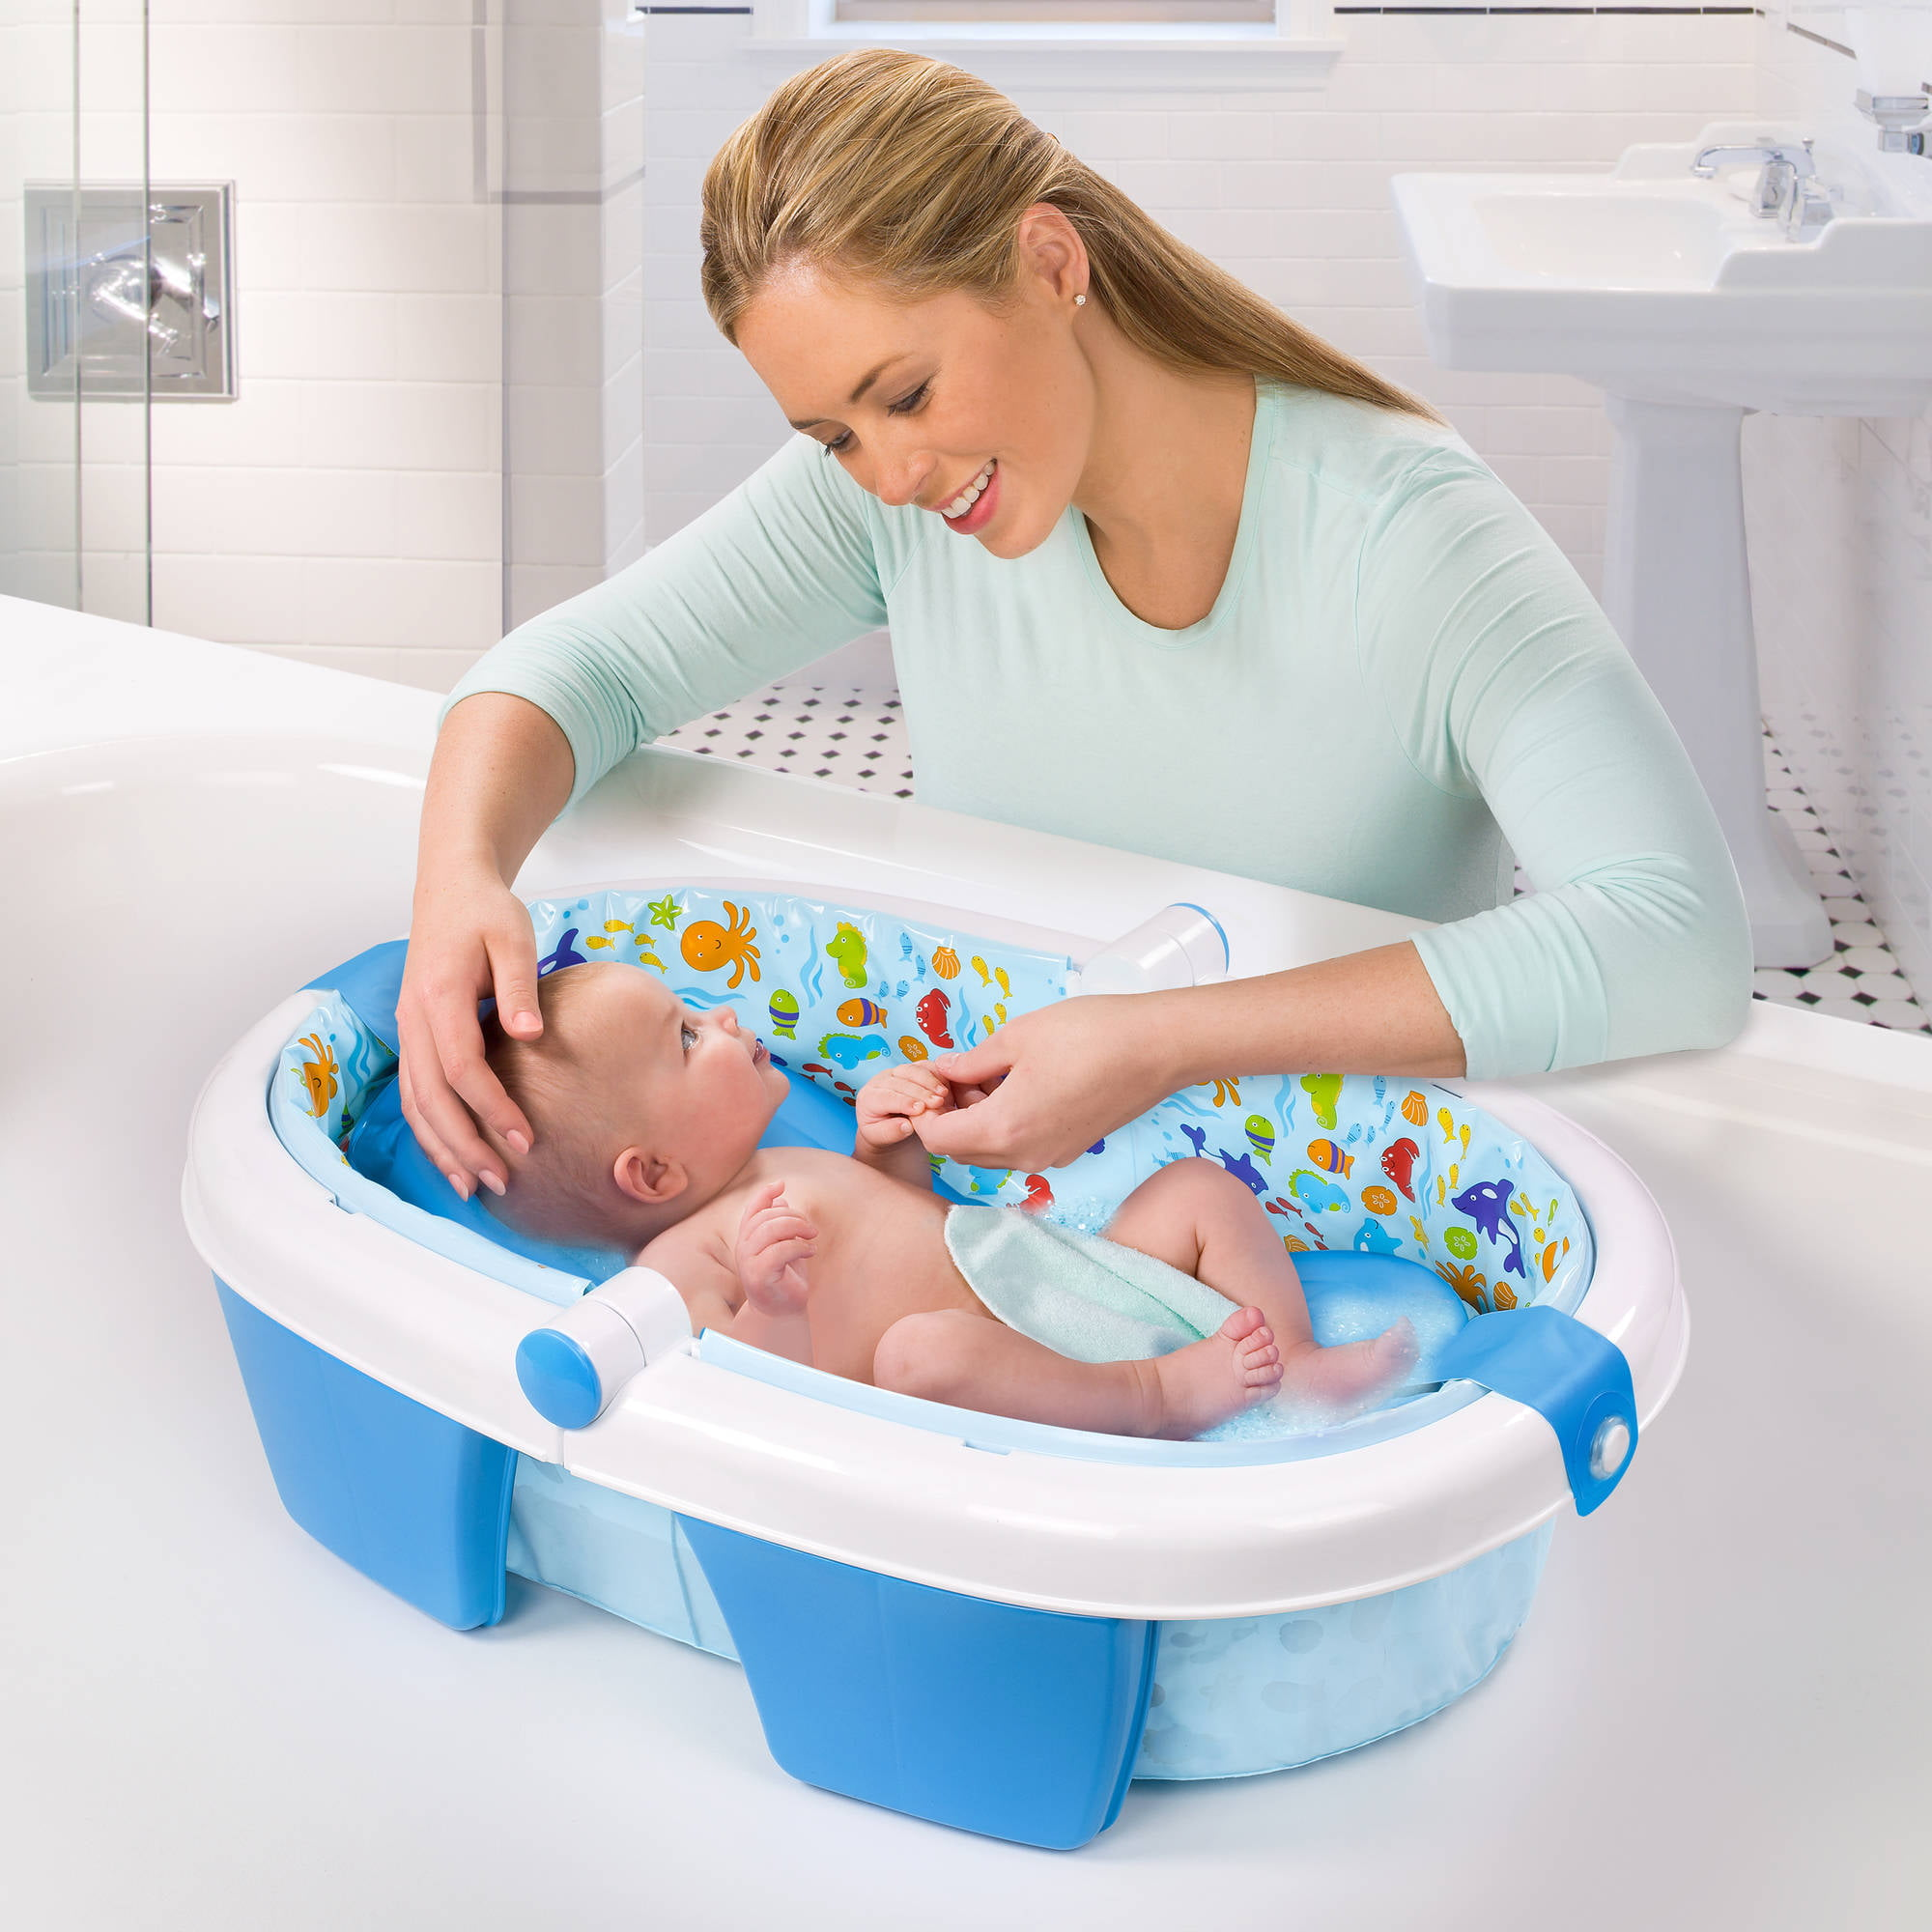 Baby bath chair walmart - Baby Bath Chair Walmart 13